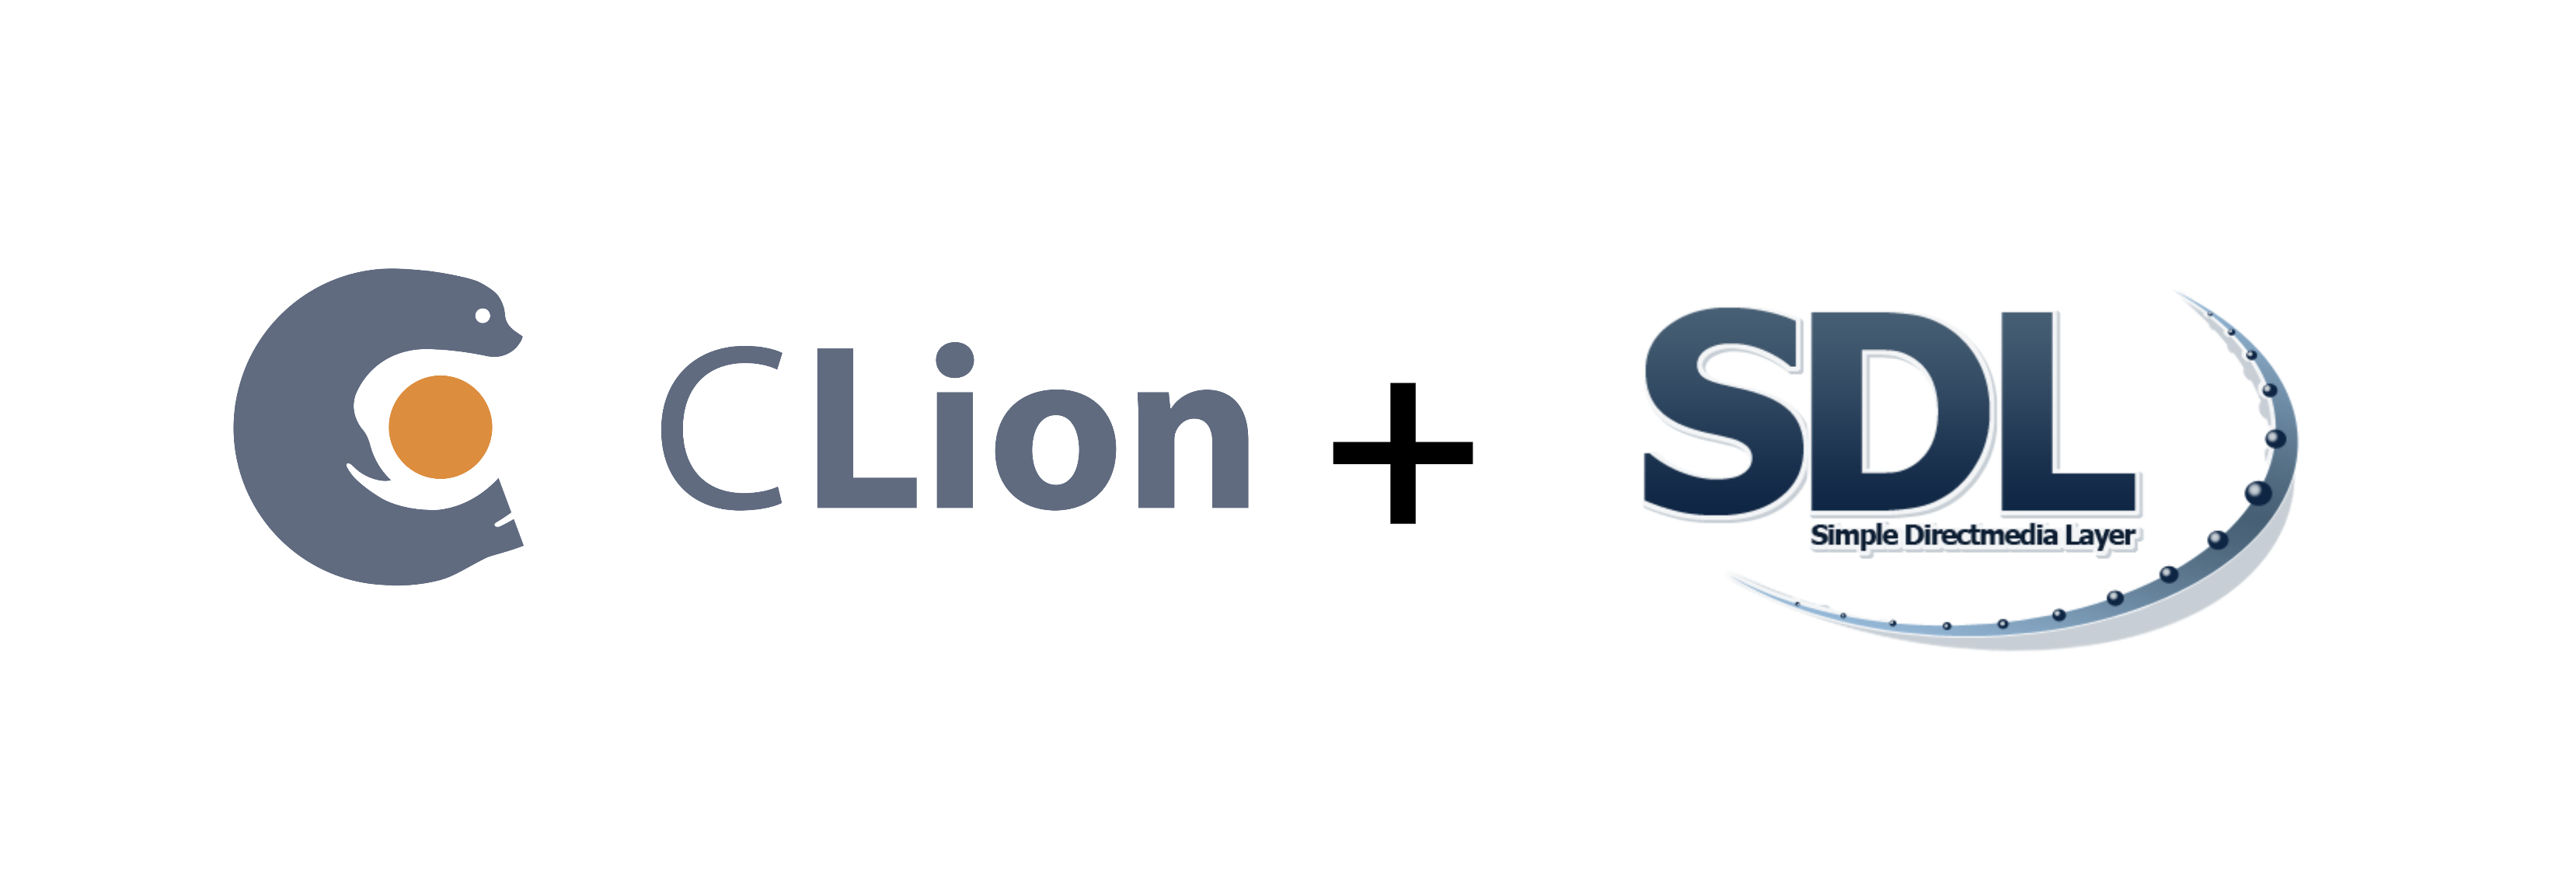 How to Configure SDL with CLion – On Windows | Swing Innovations